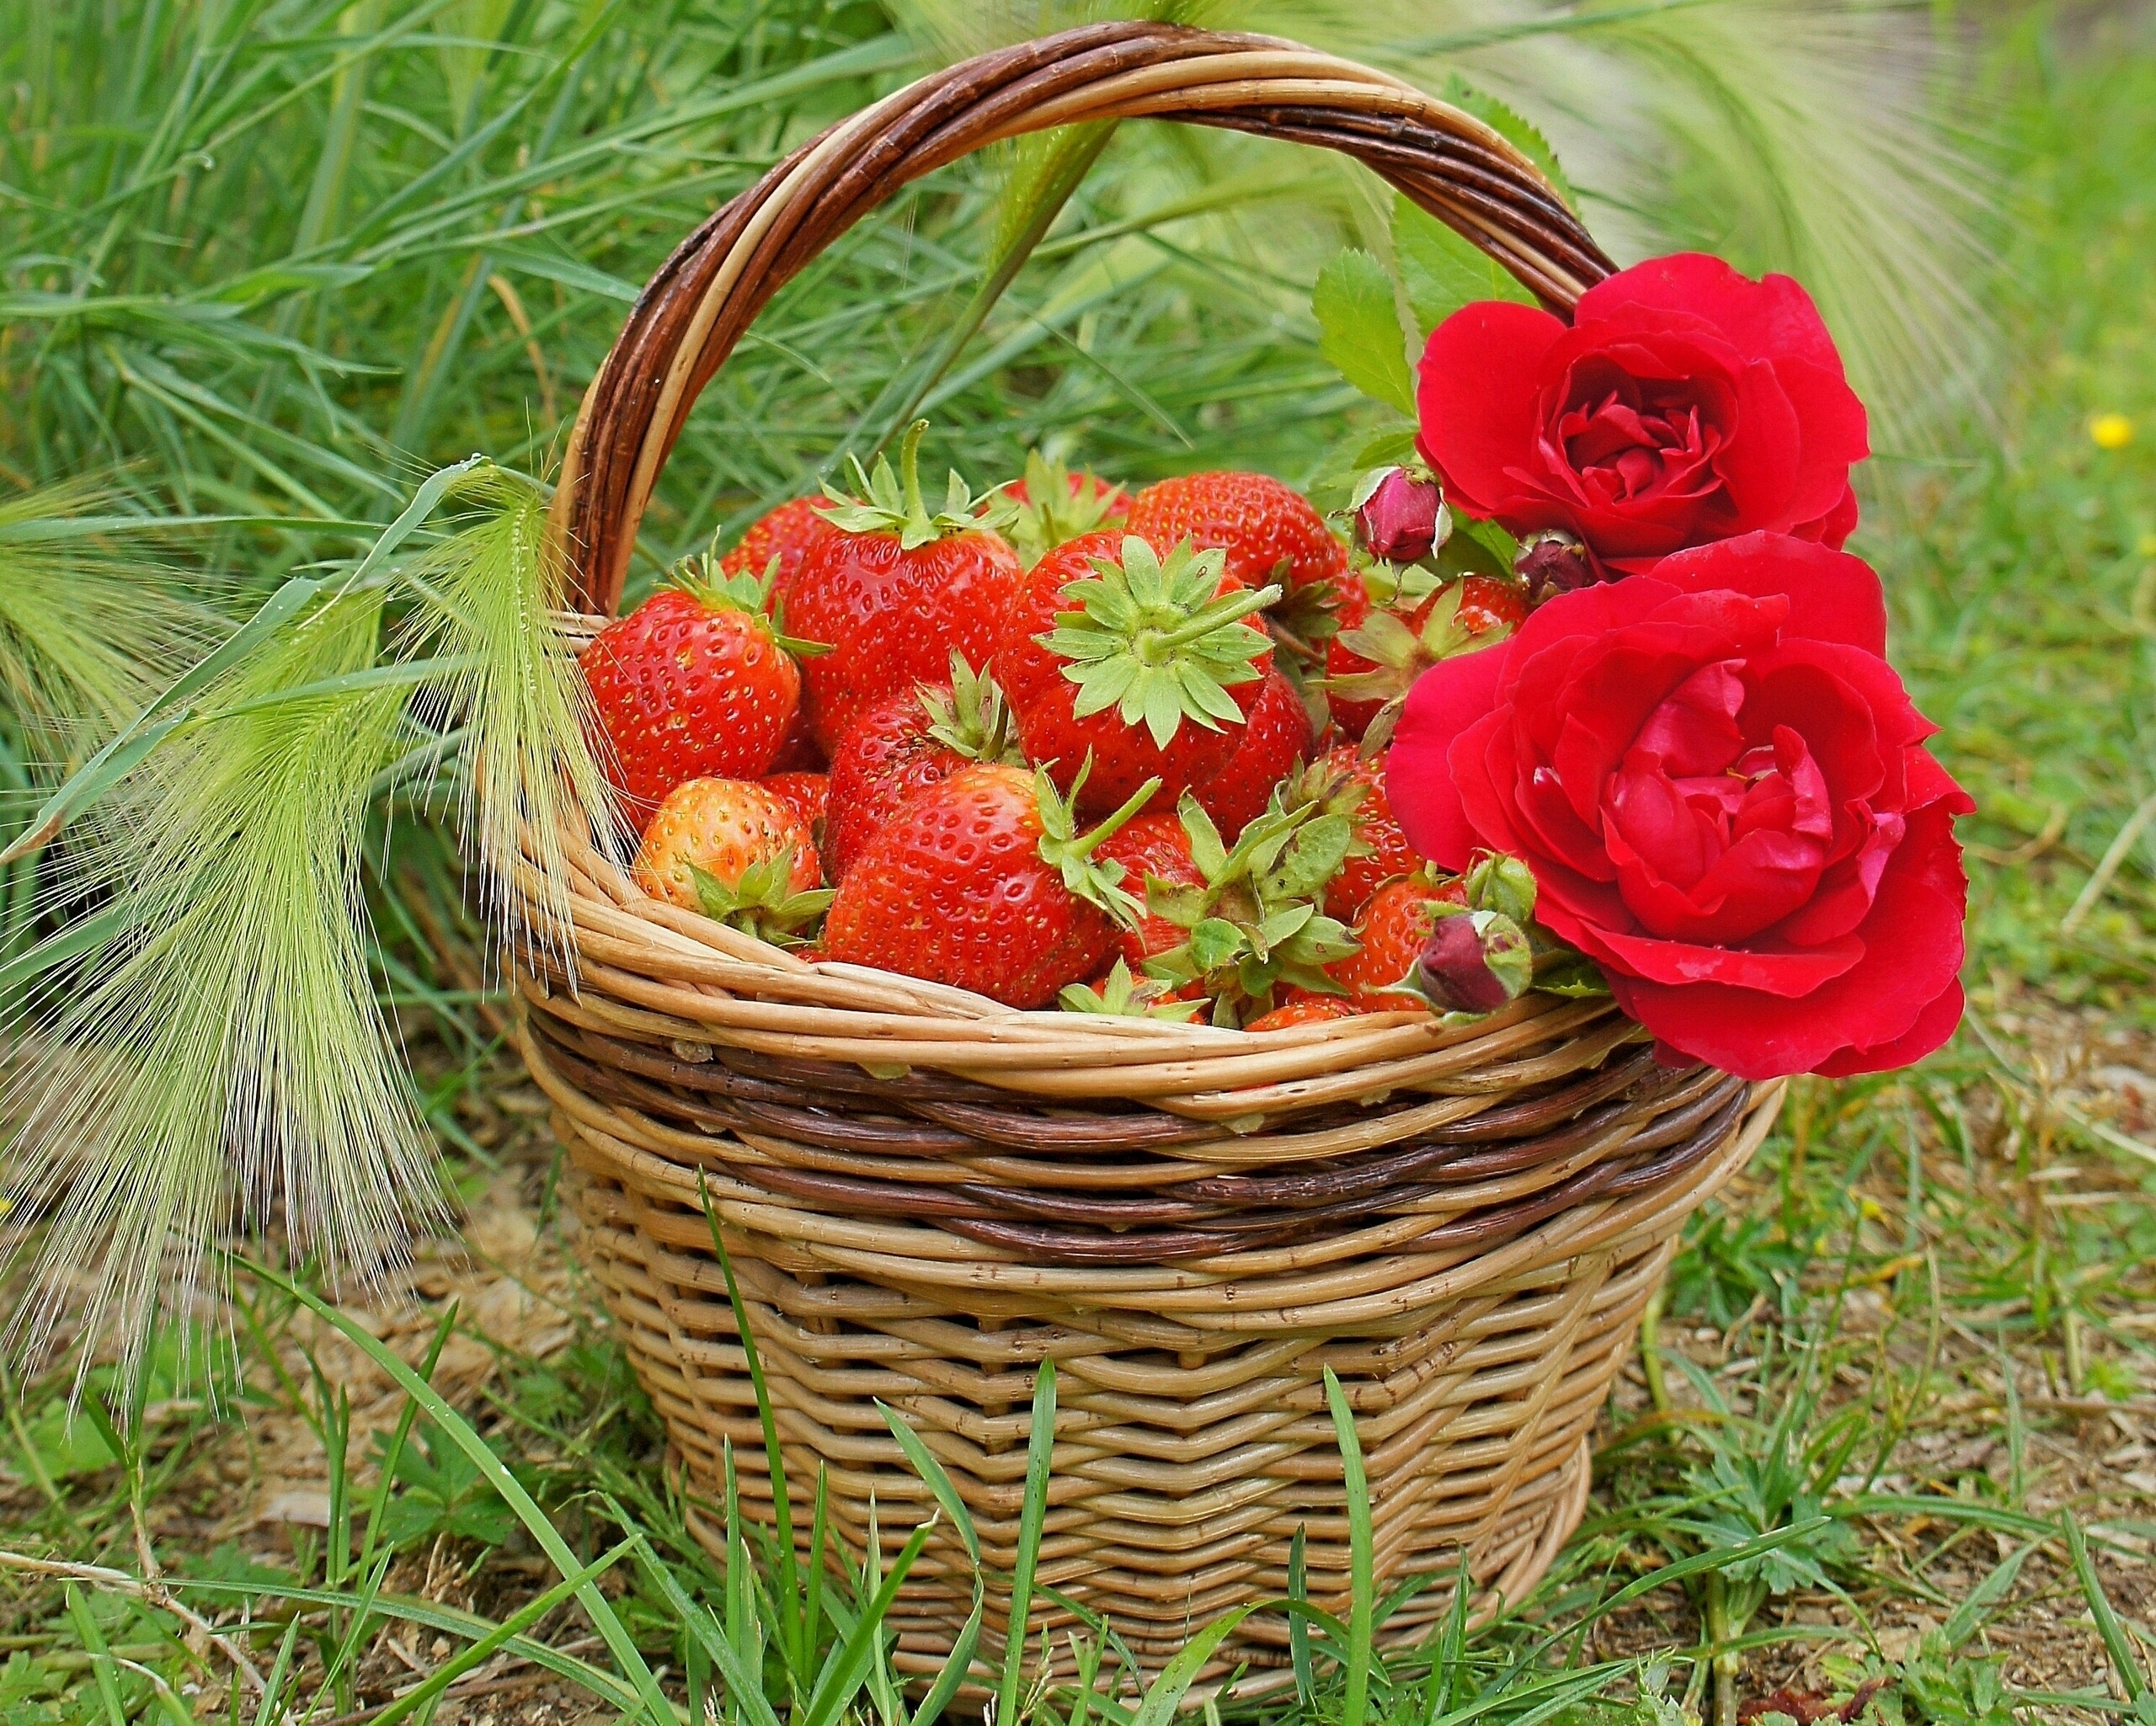 115583 download wallpaper Food, Strawberry, Roses, Berries, Basket screensavers and pictures for free